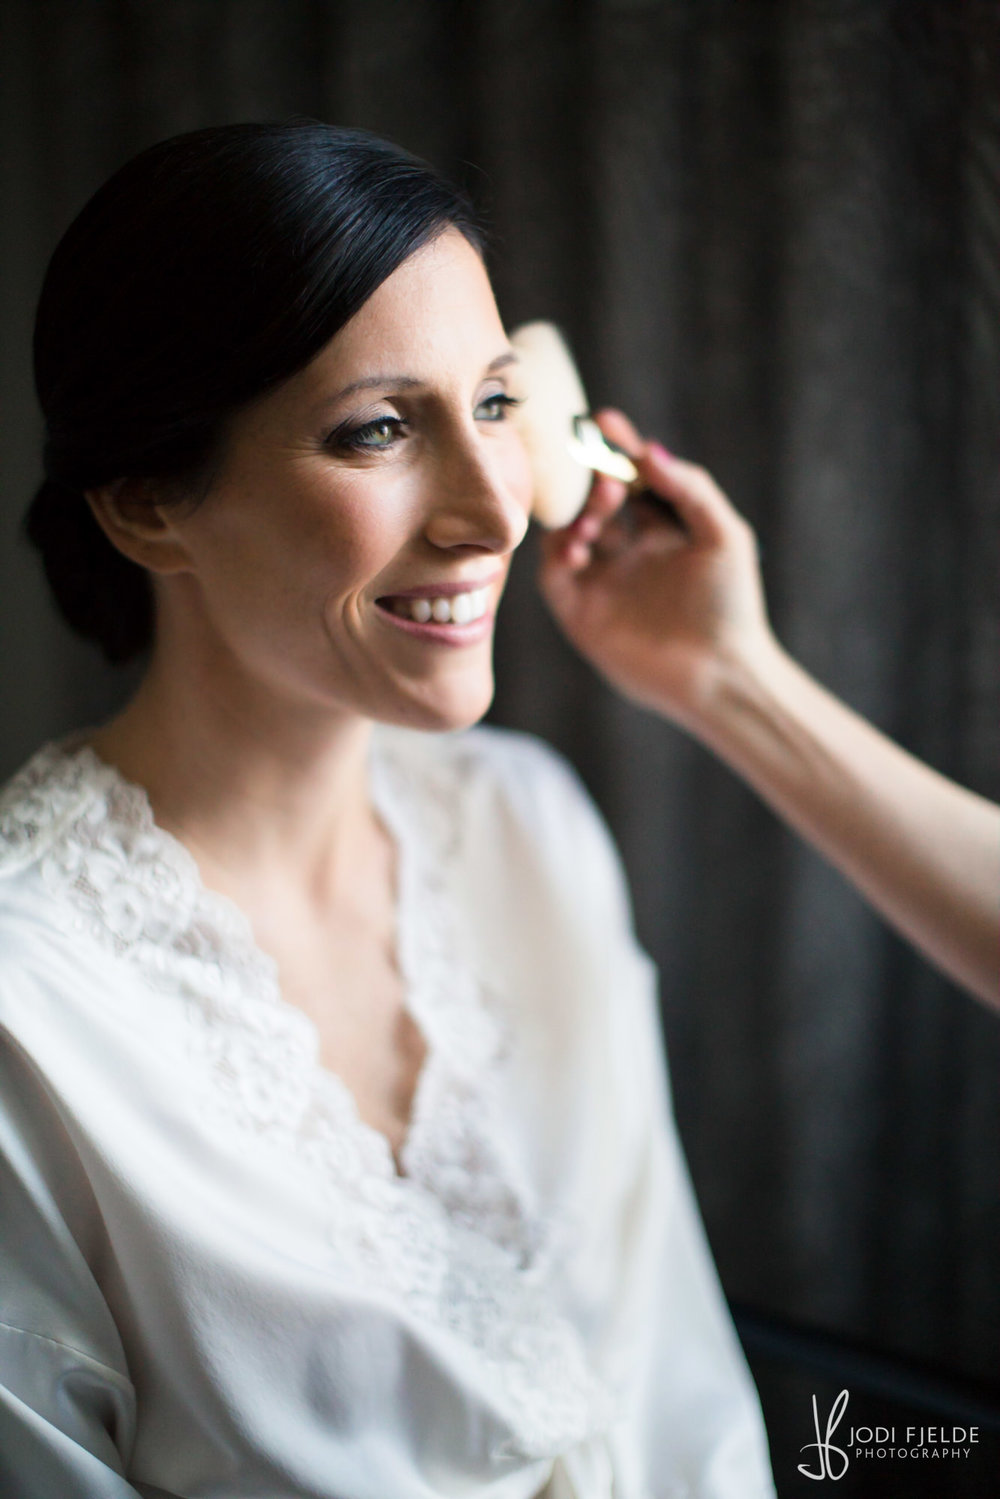 0011BRIDE-GROOM-WEDDING-PREP.jpg